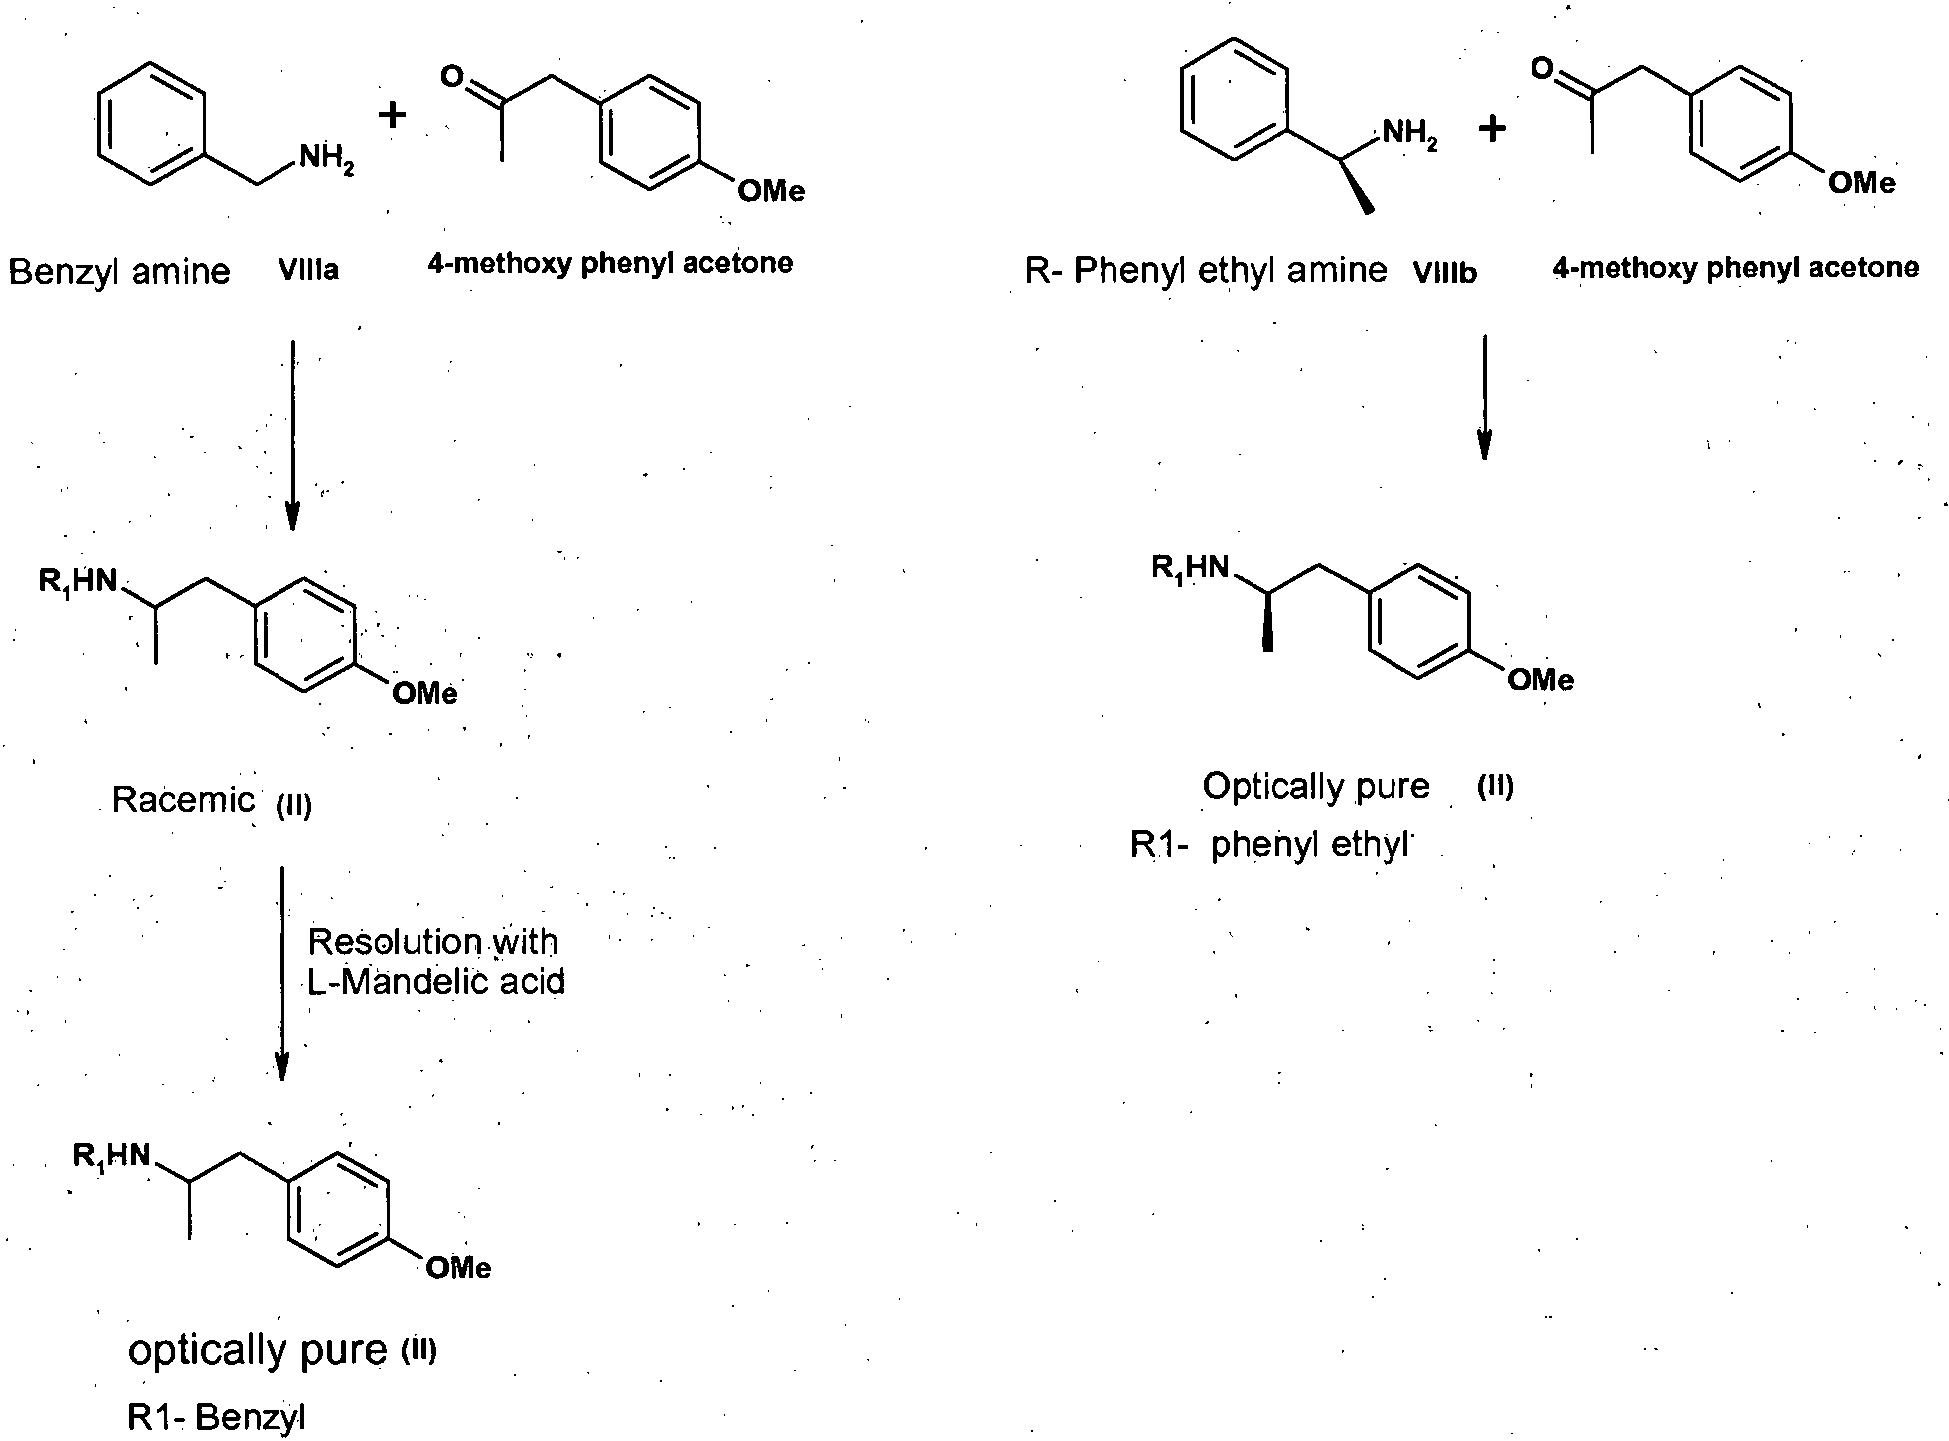 PROCESS FOR THE SYNTHESIS OF ARFORMOTEROL - Patent 2285770